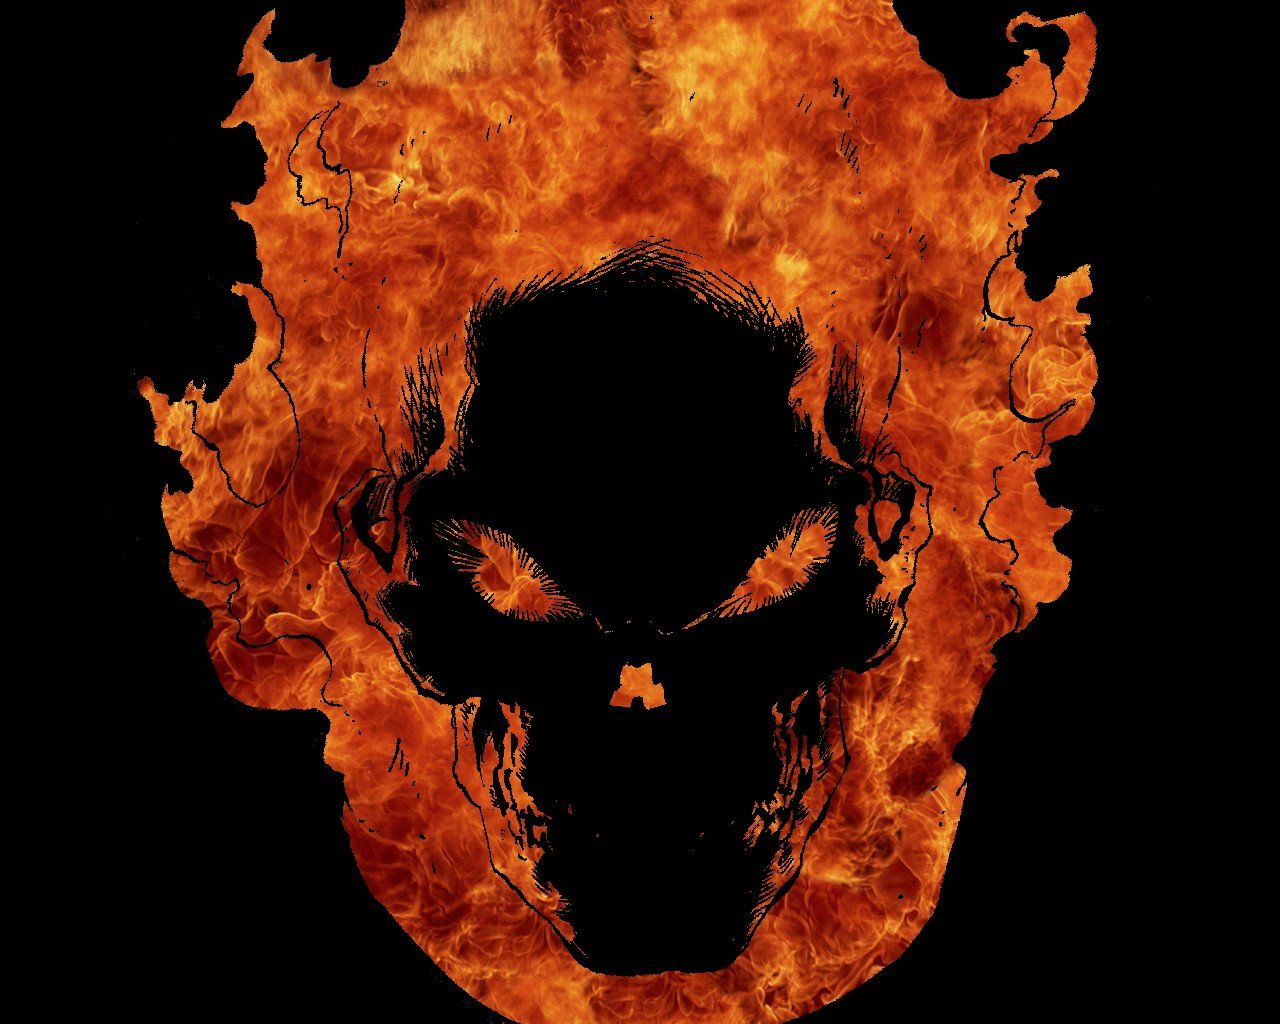 Download Ghost Rider Wallpapers 1280x1024